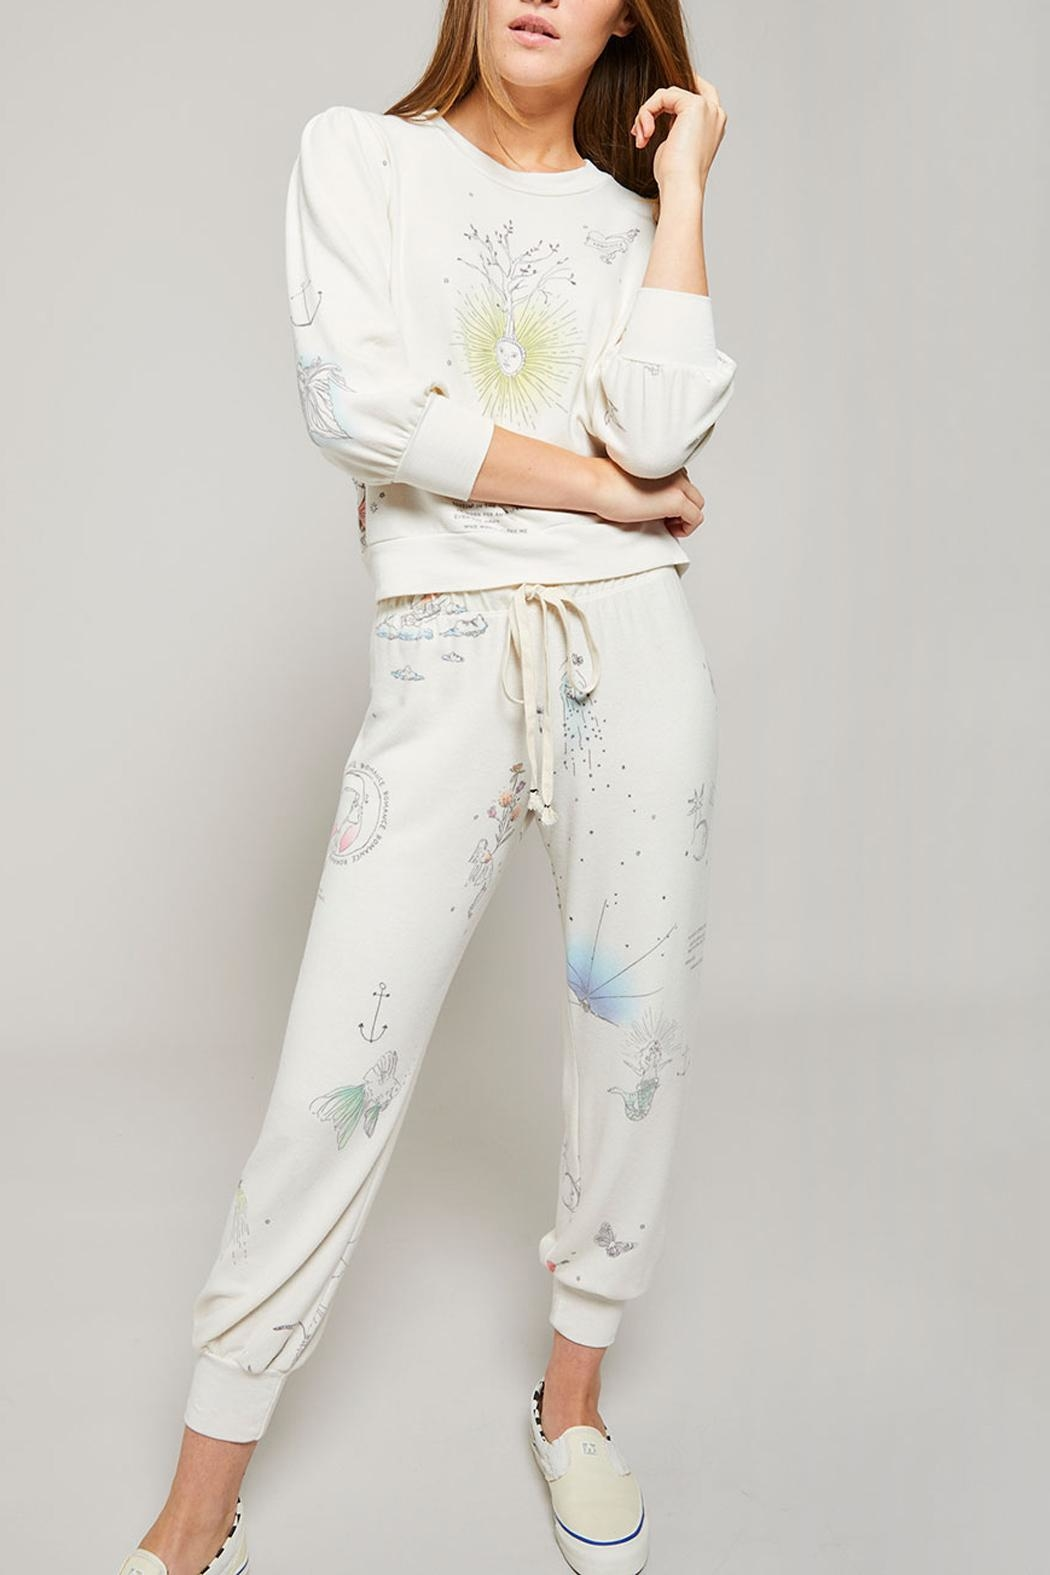 All Things Fabulous Catalina Cozy Sweats - Front Cropped Image